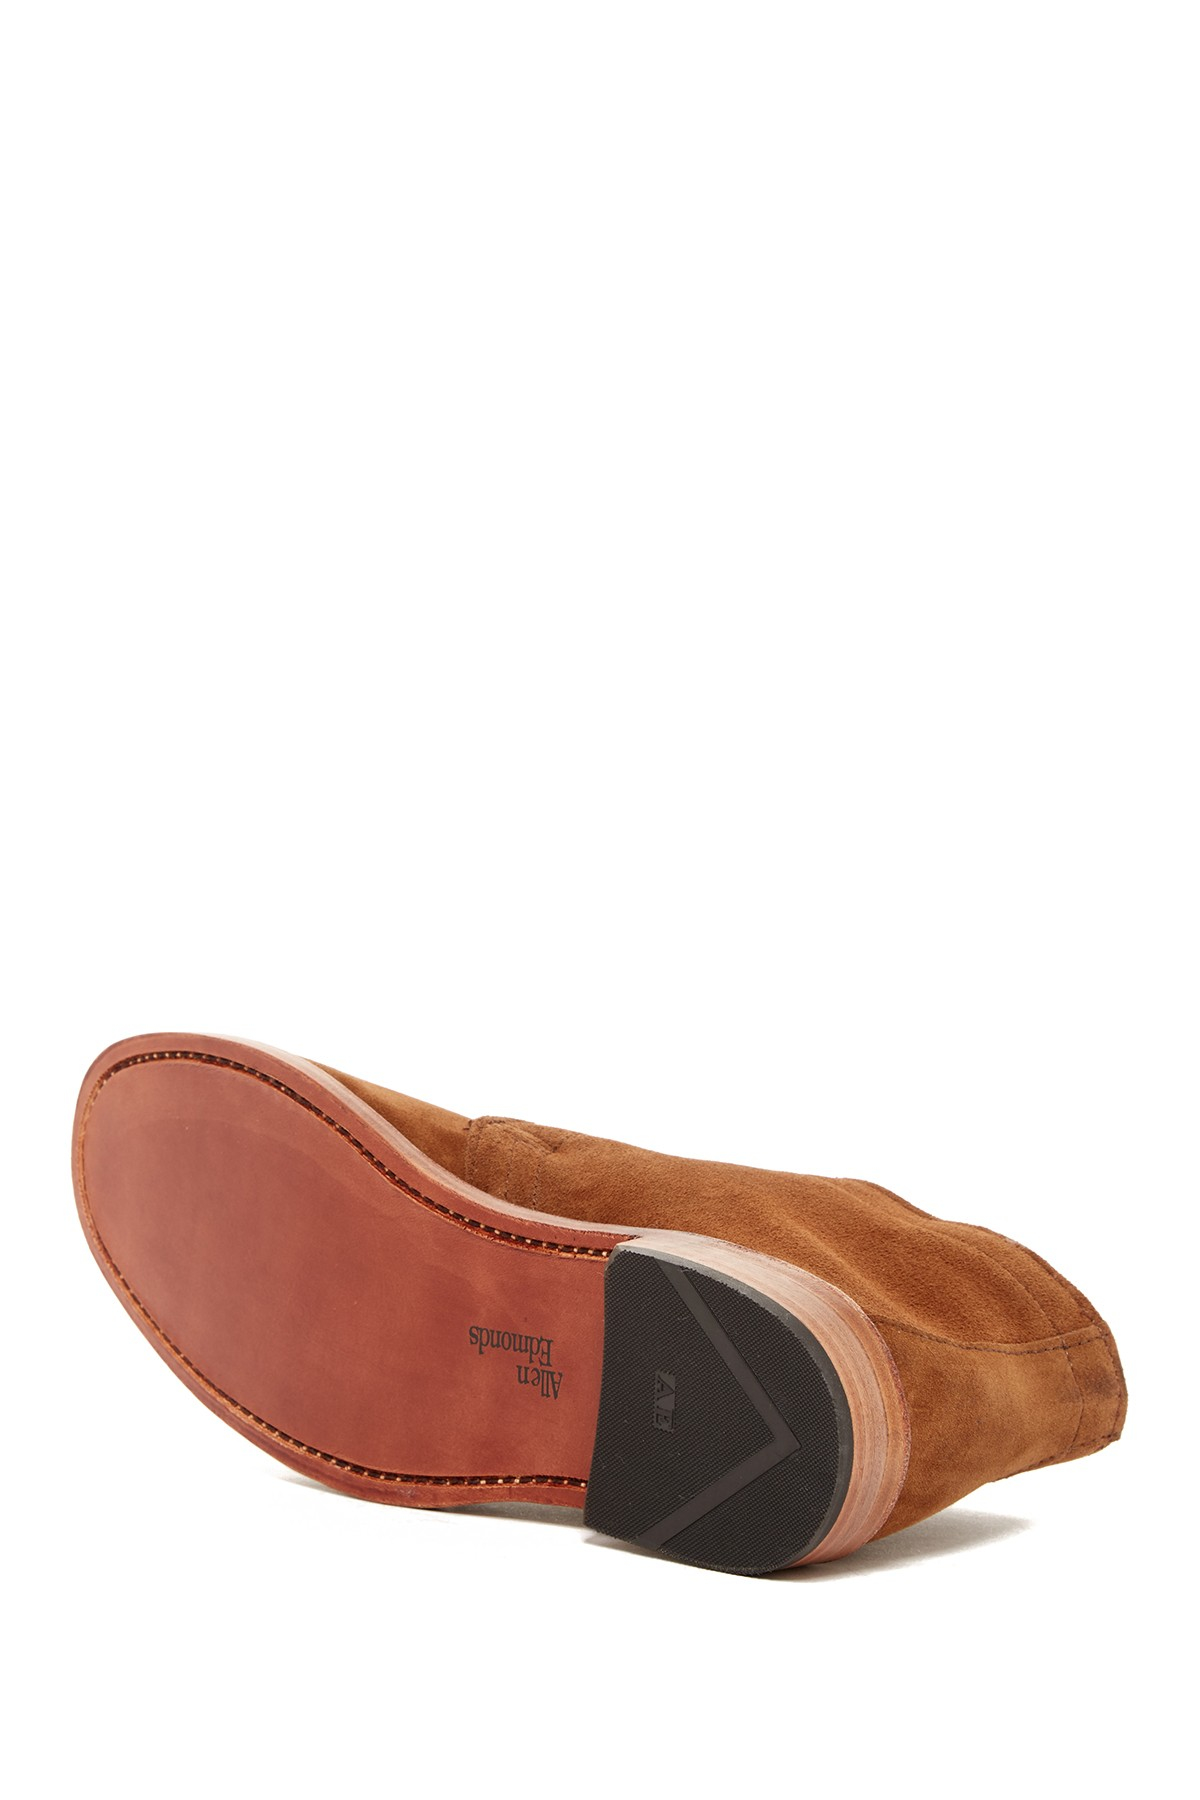 Allen Edmonds Mojave 2 0 Chukka Boot Extra Wide Width Available In Brown For Men Lyst